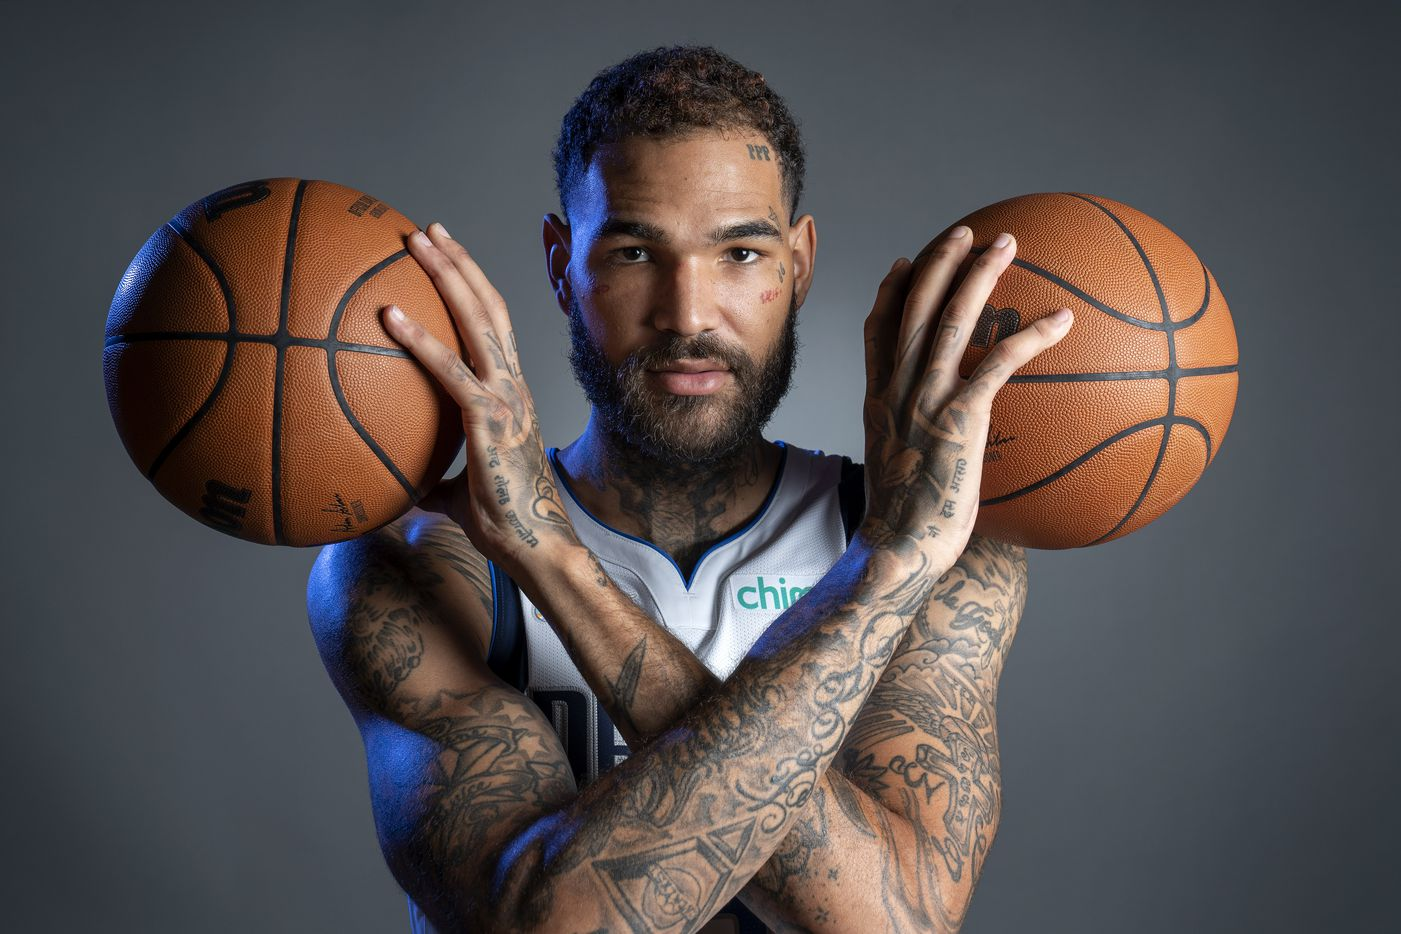 Dallas Mavericks forward Willie Cauley-Stein poses for a portrait during the Dallas Mavericks media day, Monday, September 27, 2021 at American Airlines Center in Dallas. (Jeffrey McWhorter/Special Contributor)